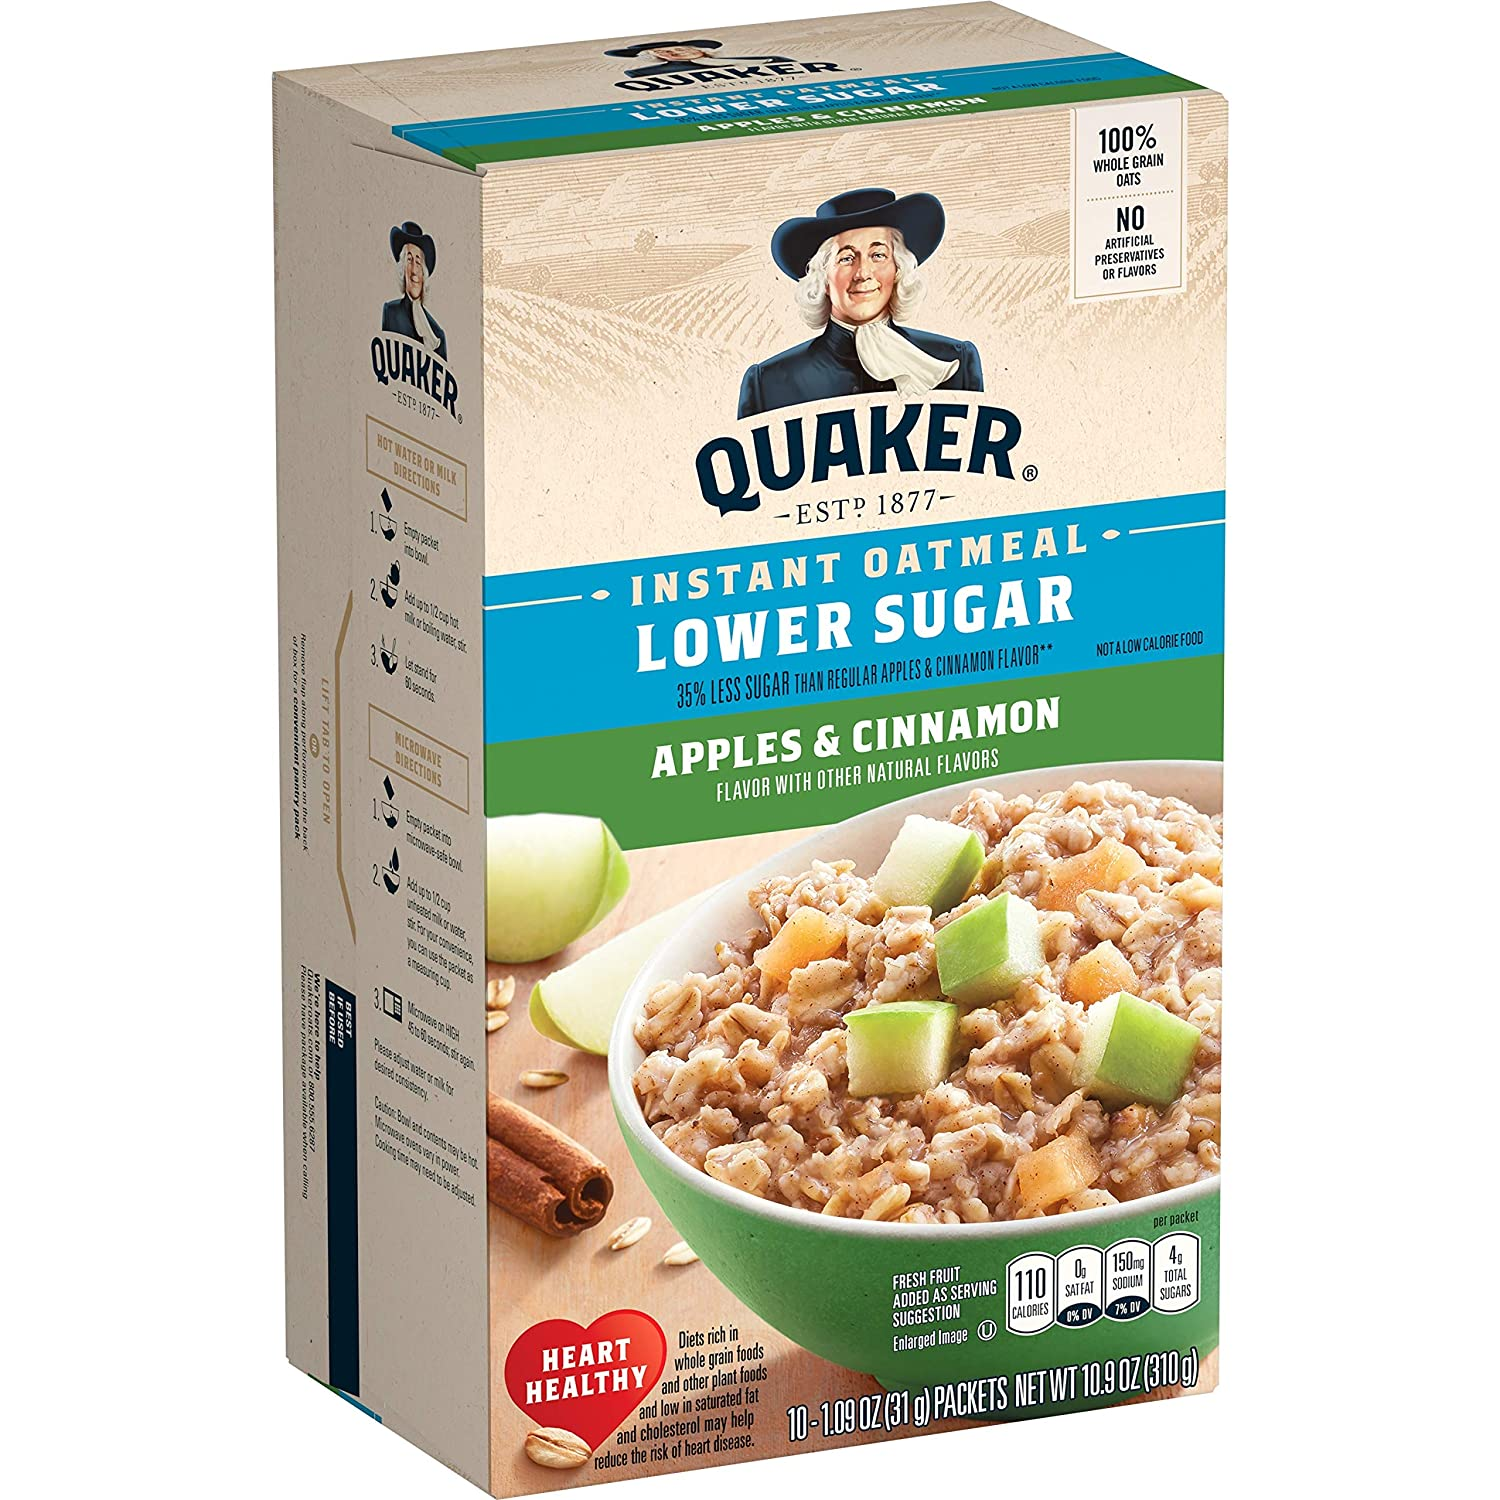 Quaker Instant Oatmeal, Lower Sugar, Apples & Cinnamon, Breakfast Cereal, 10 Packets Per Box